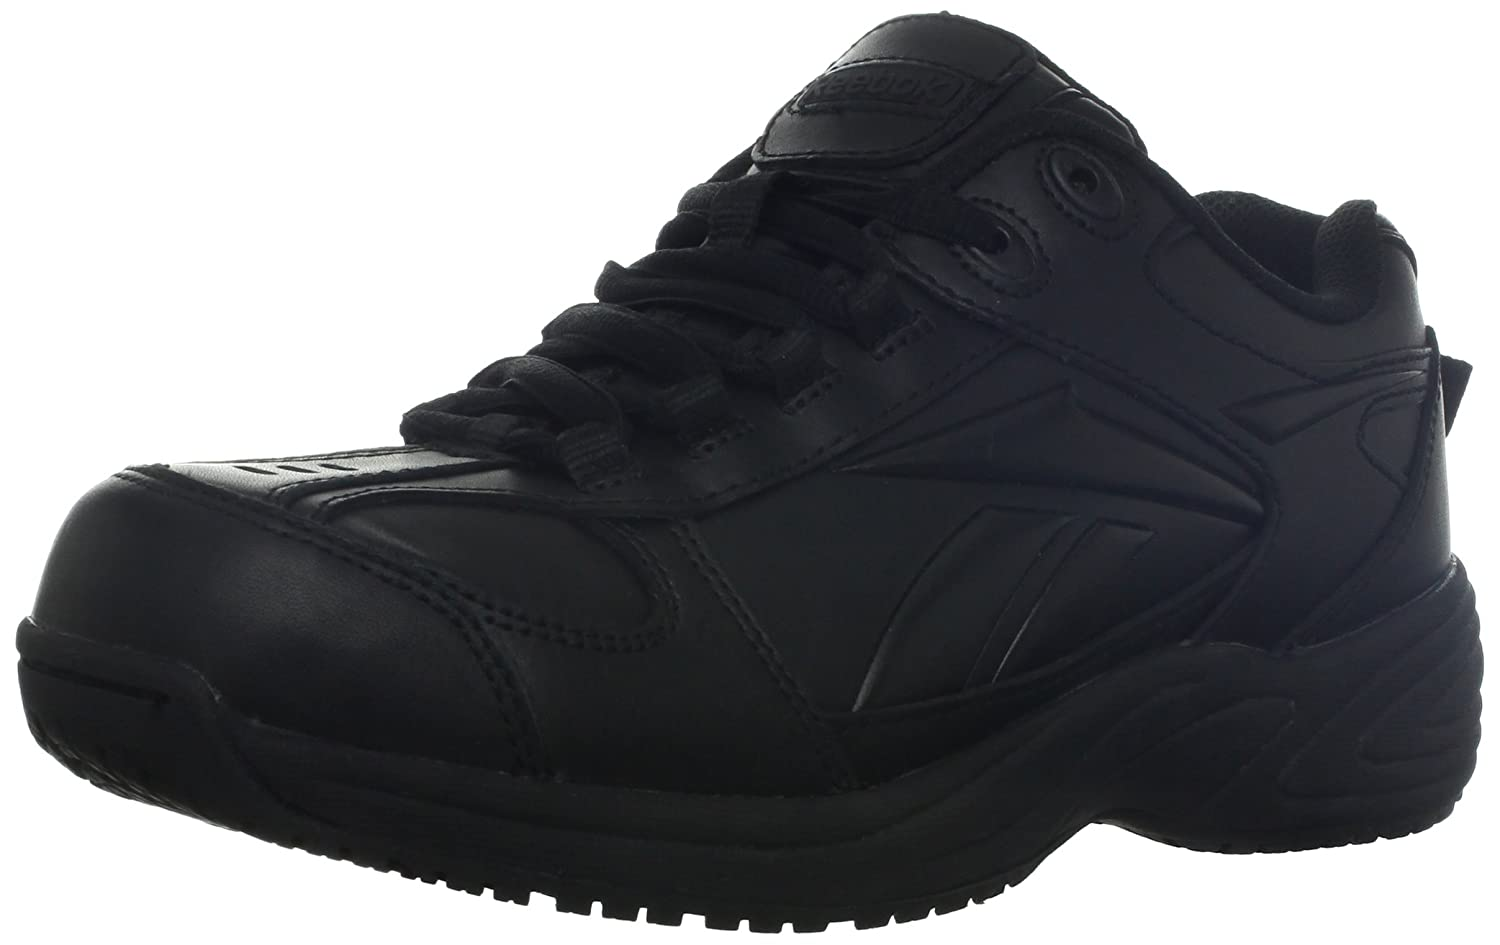 Reebok Work Women's Jorie RB110 Athletic Safety Shoe B000A29HJ8 10.5 B(M) US|Black